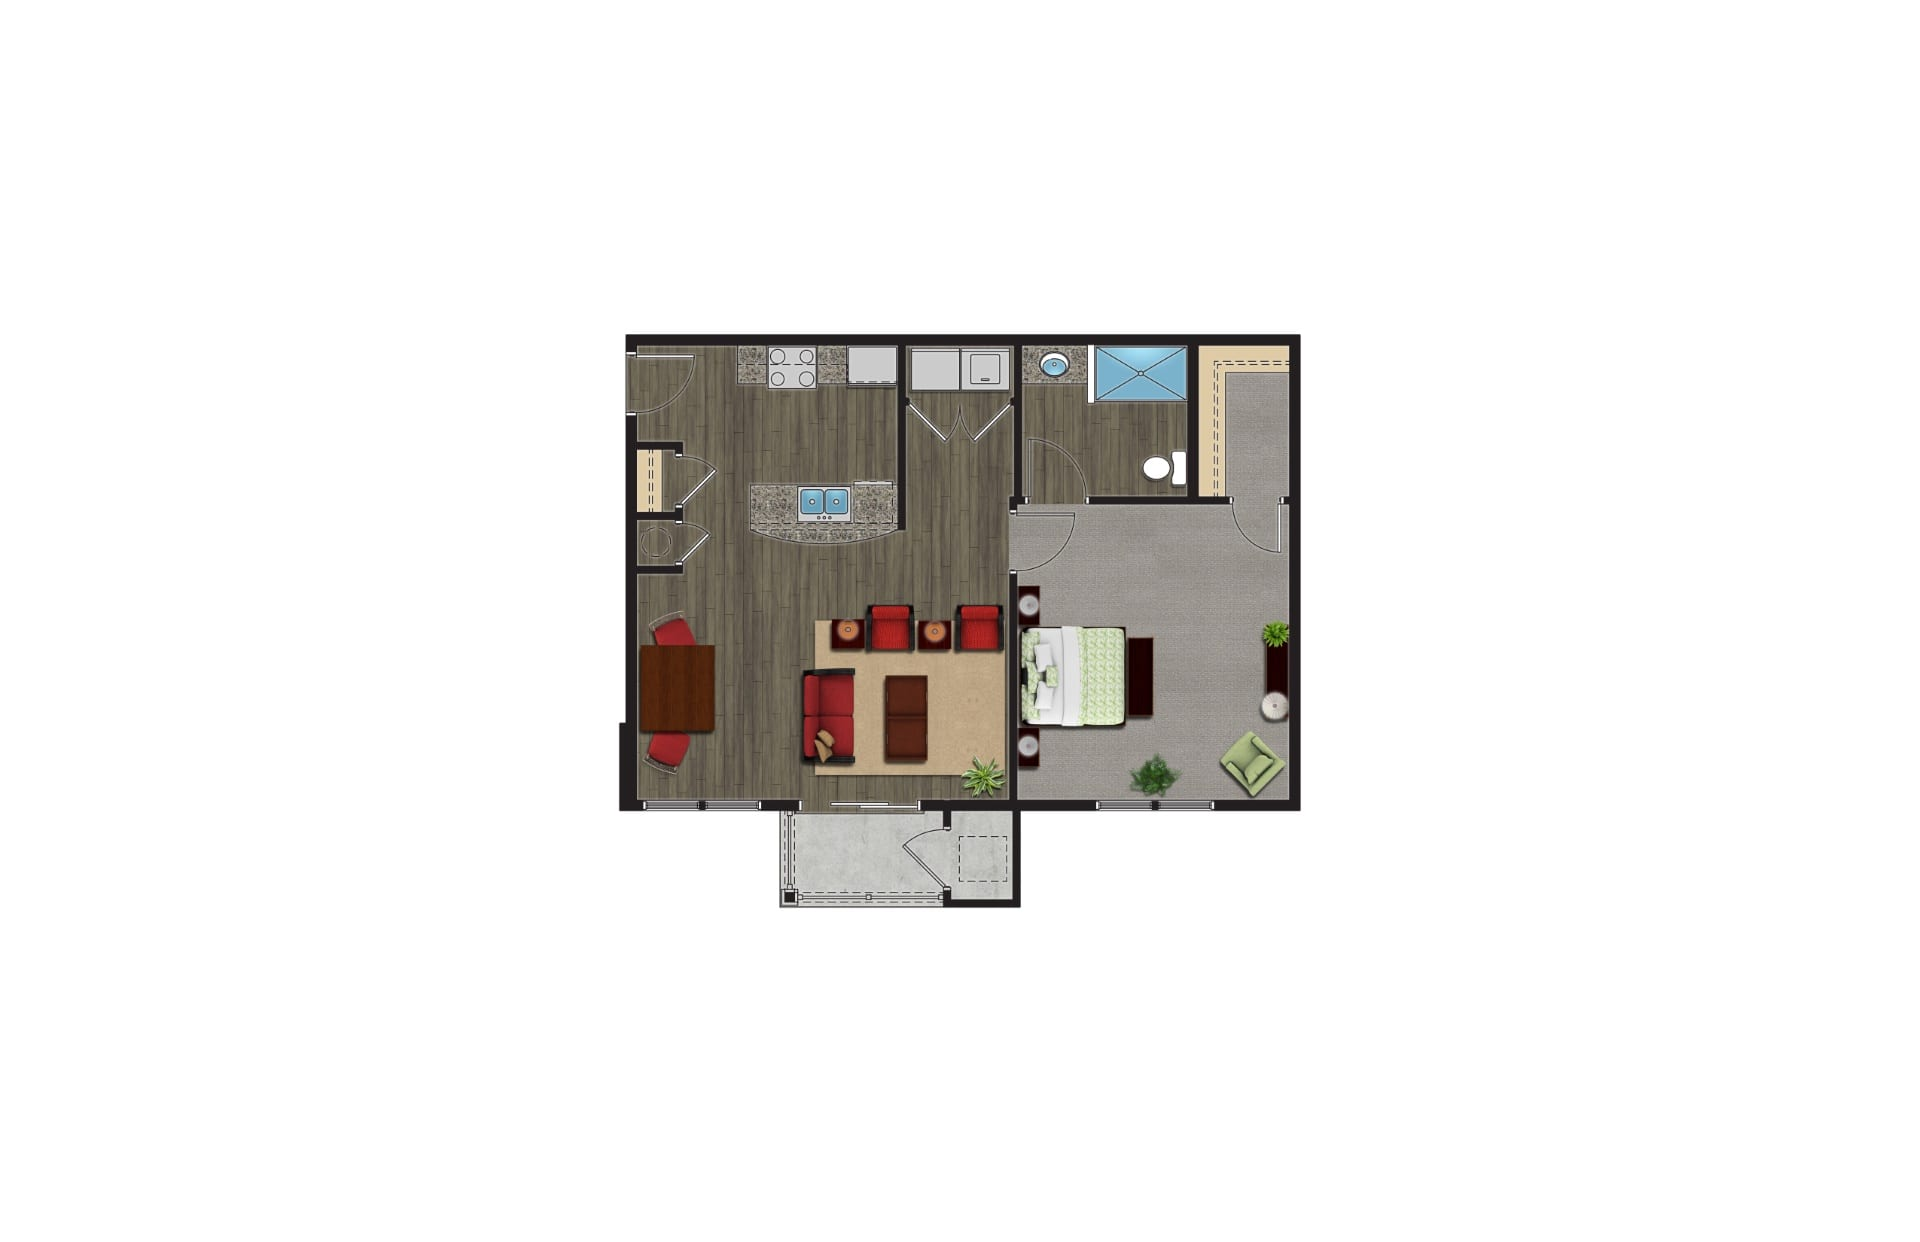 The Spruce Floor Plan, Luxury Apartments with Garages for rent. The 1 Bedroom Apartment in Orchard Park NY are pet friendly apartments.